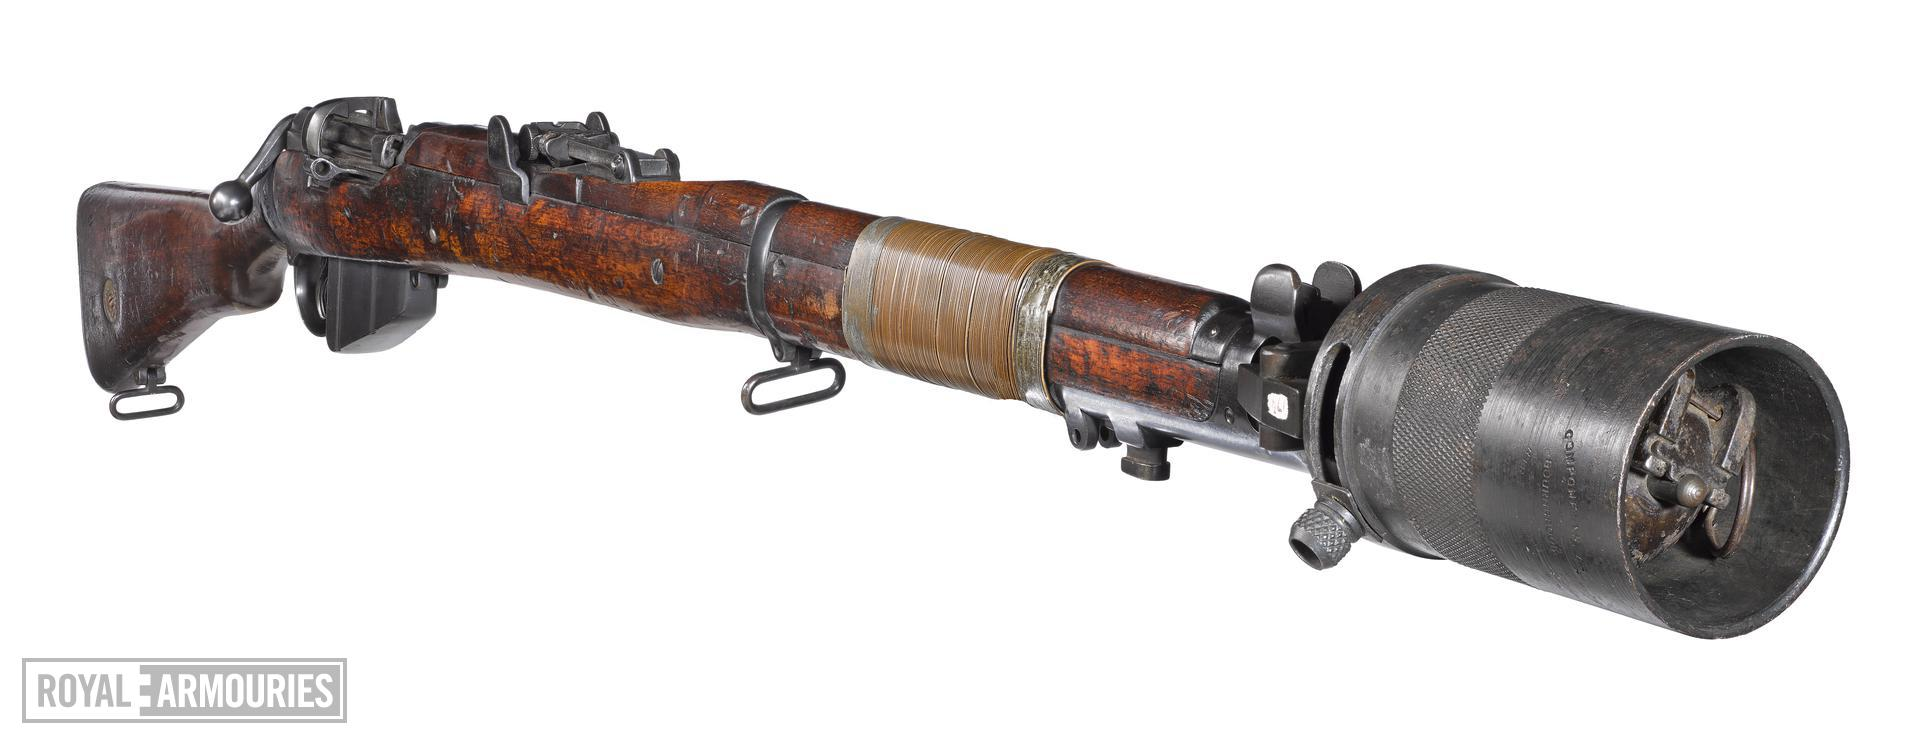 Short Magazine Lee Enfield (SMLE) Mk.III* EY centrefire bolt action rifle, British, about 1918 (PR.5750), with grenade discharger (PR.10097).